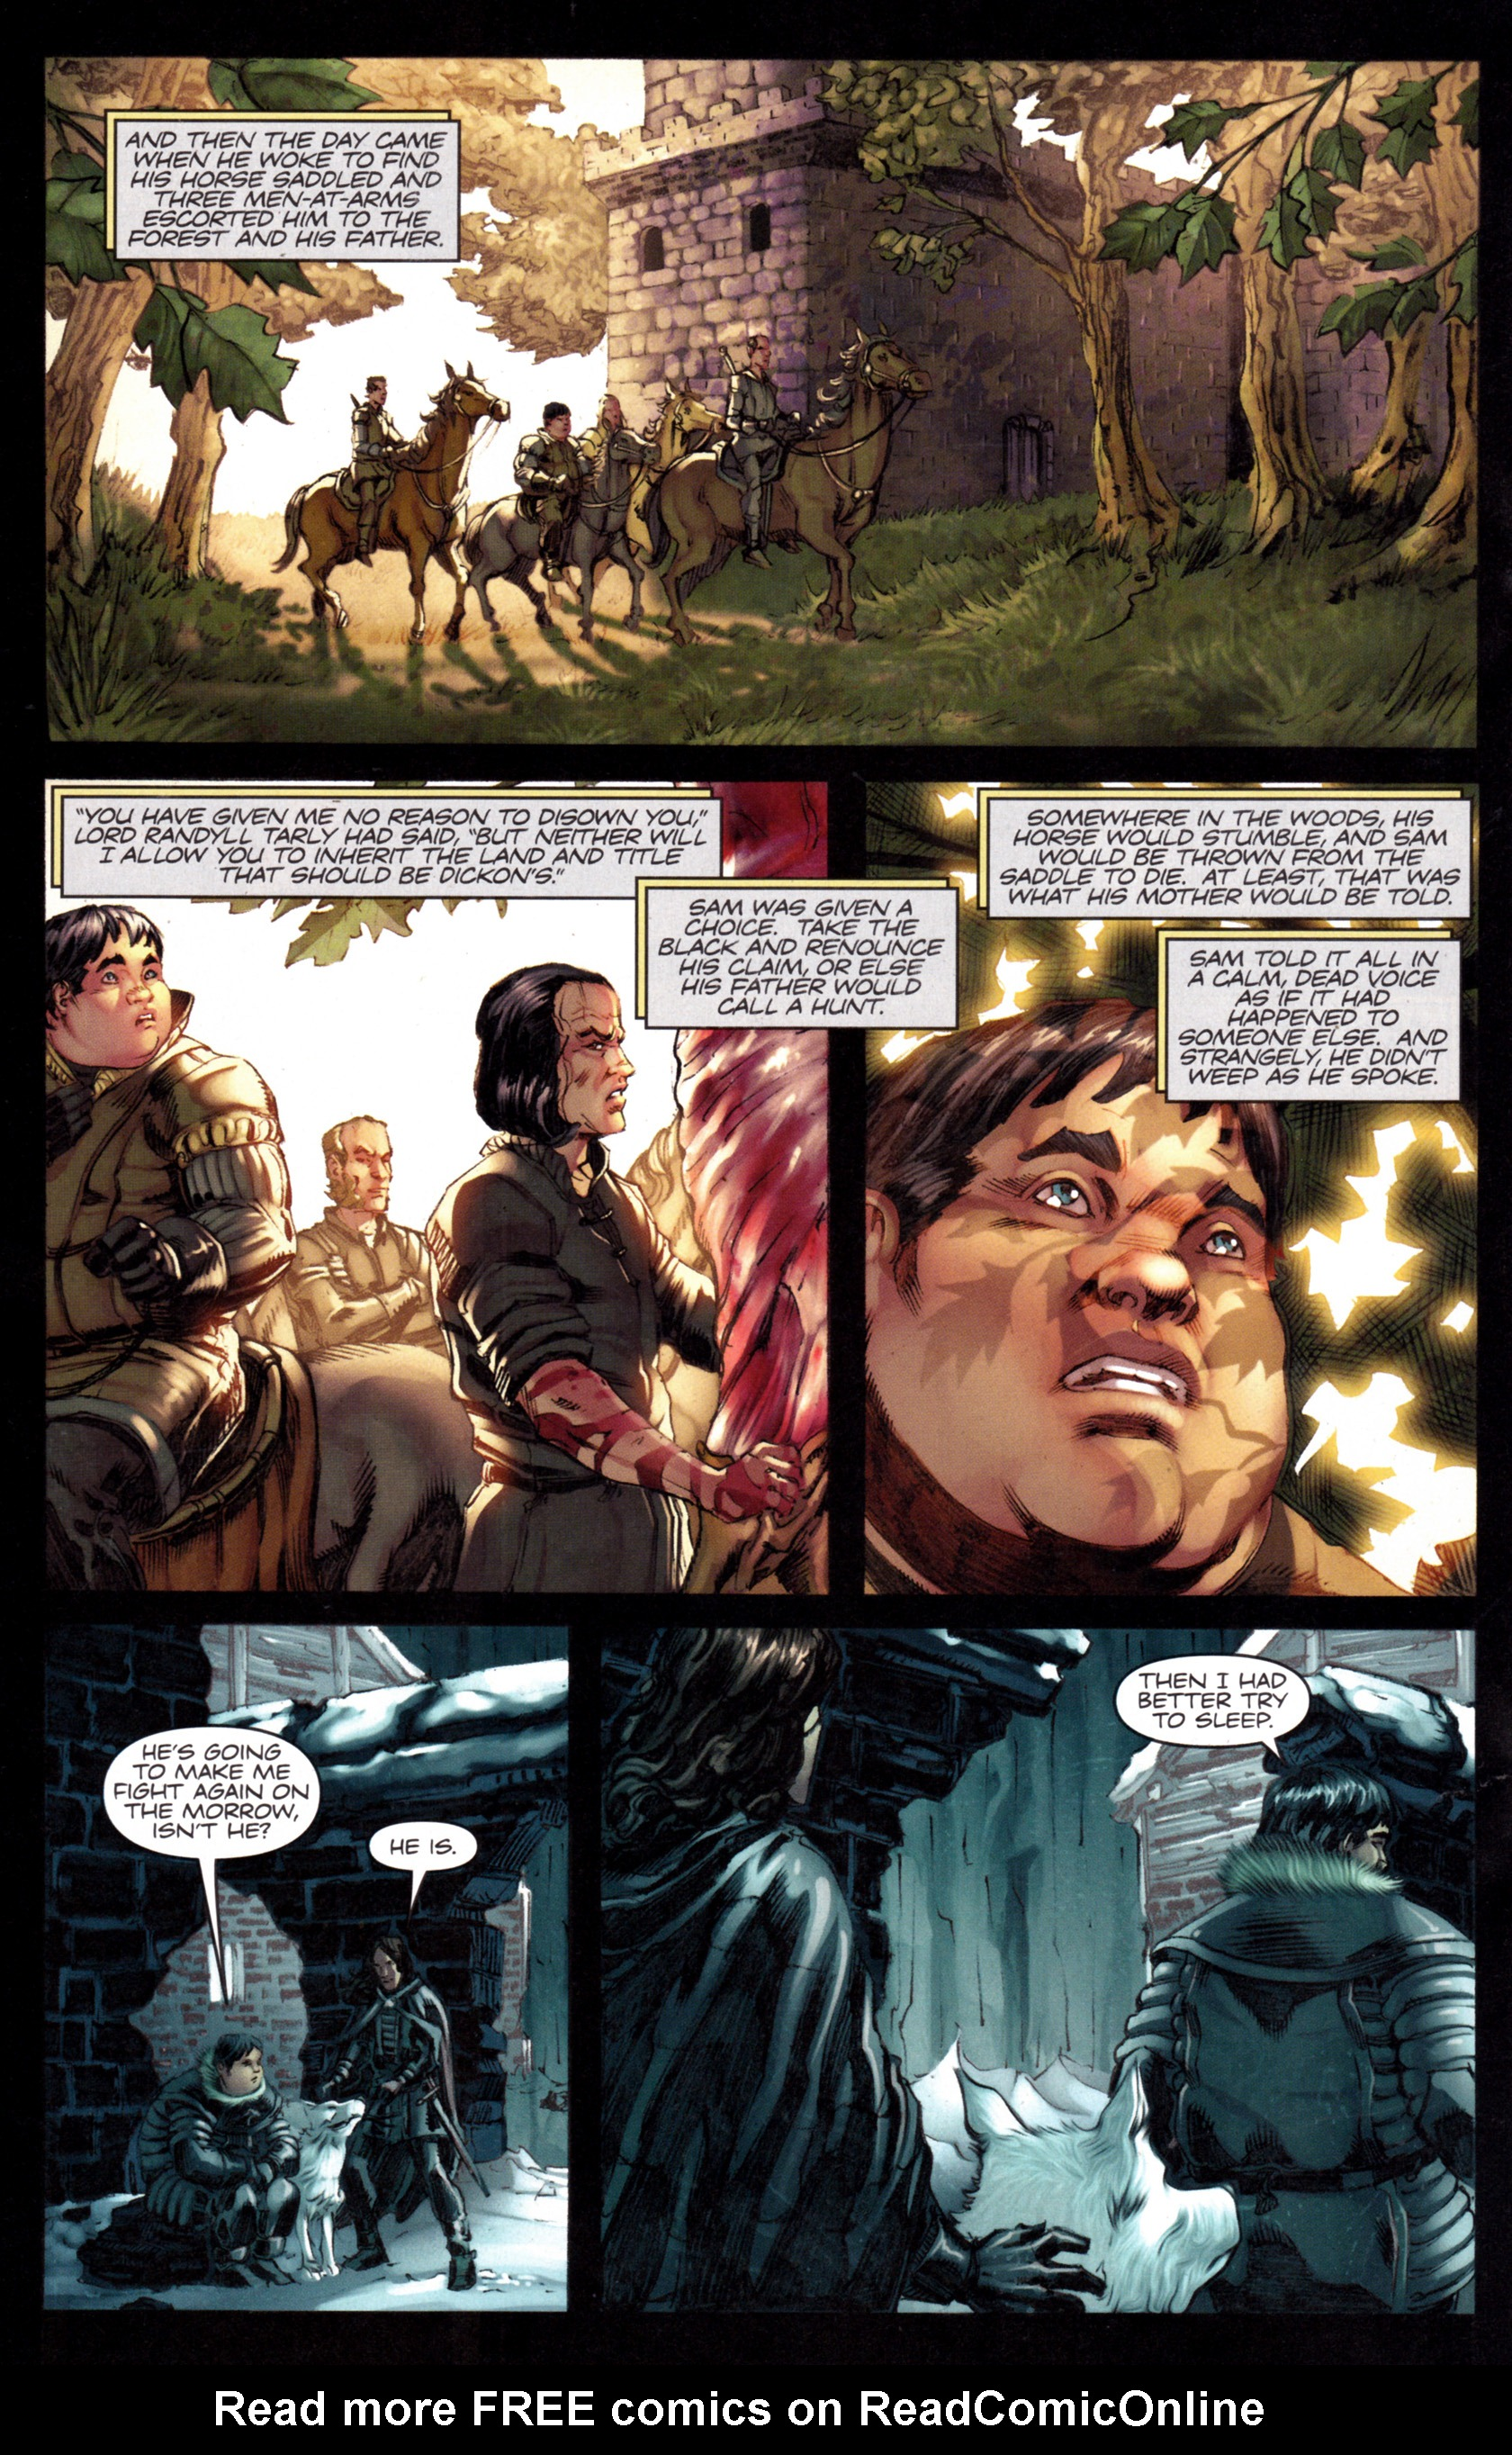 Read online A Game Of Thrones comic -  Issue #8 - 20